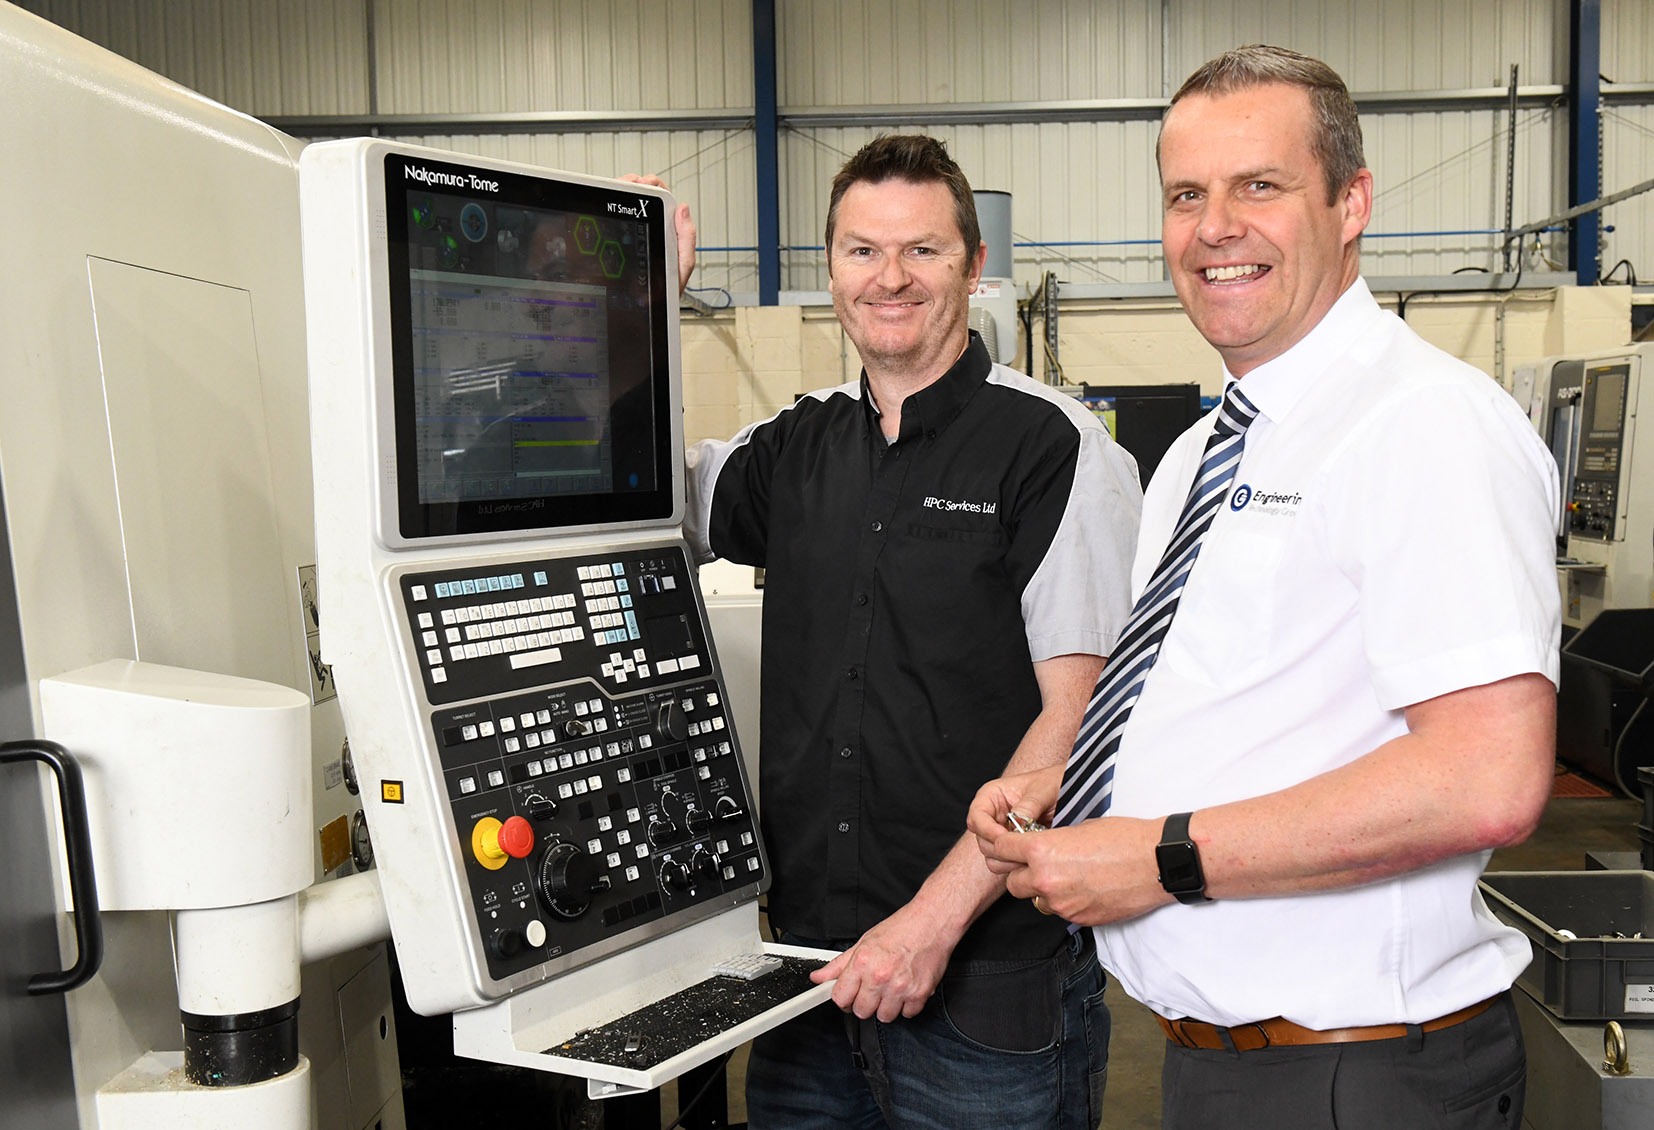 Derbyshire machining specialist invests £600,000 to keep up with reshoring demand